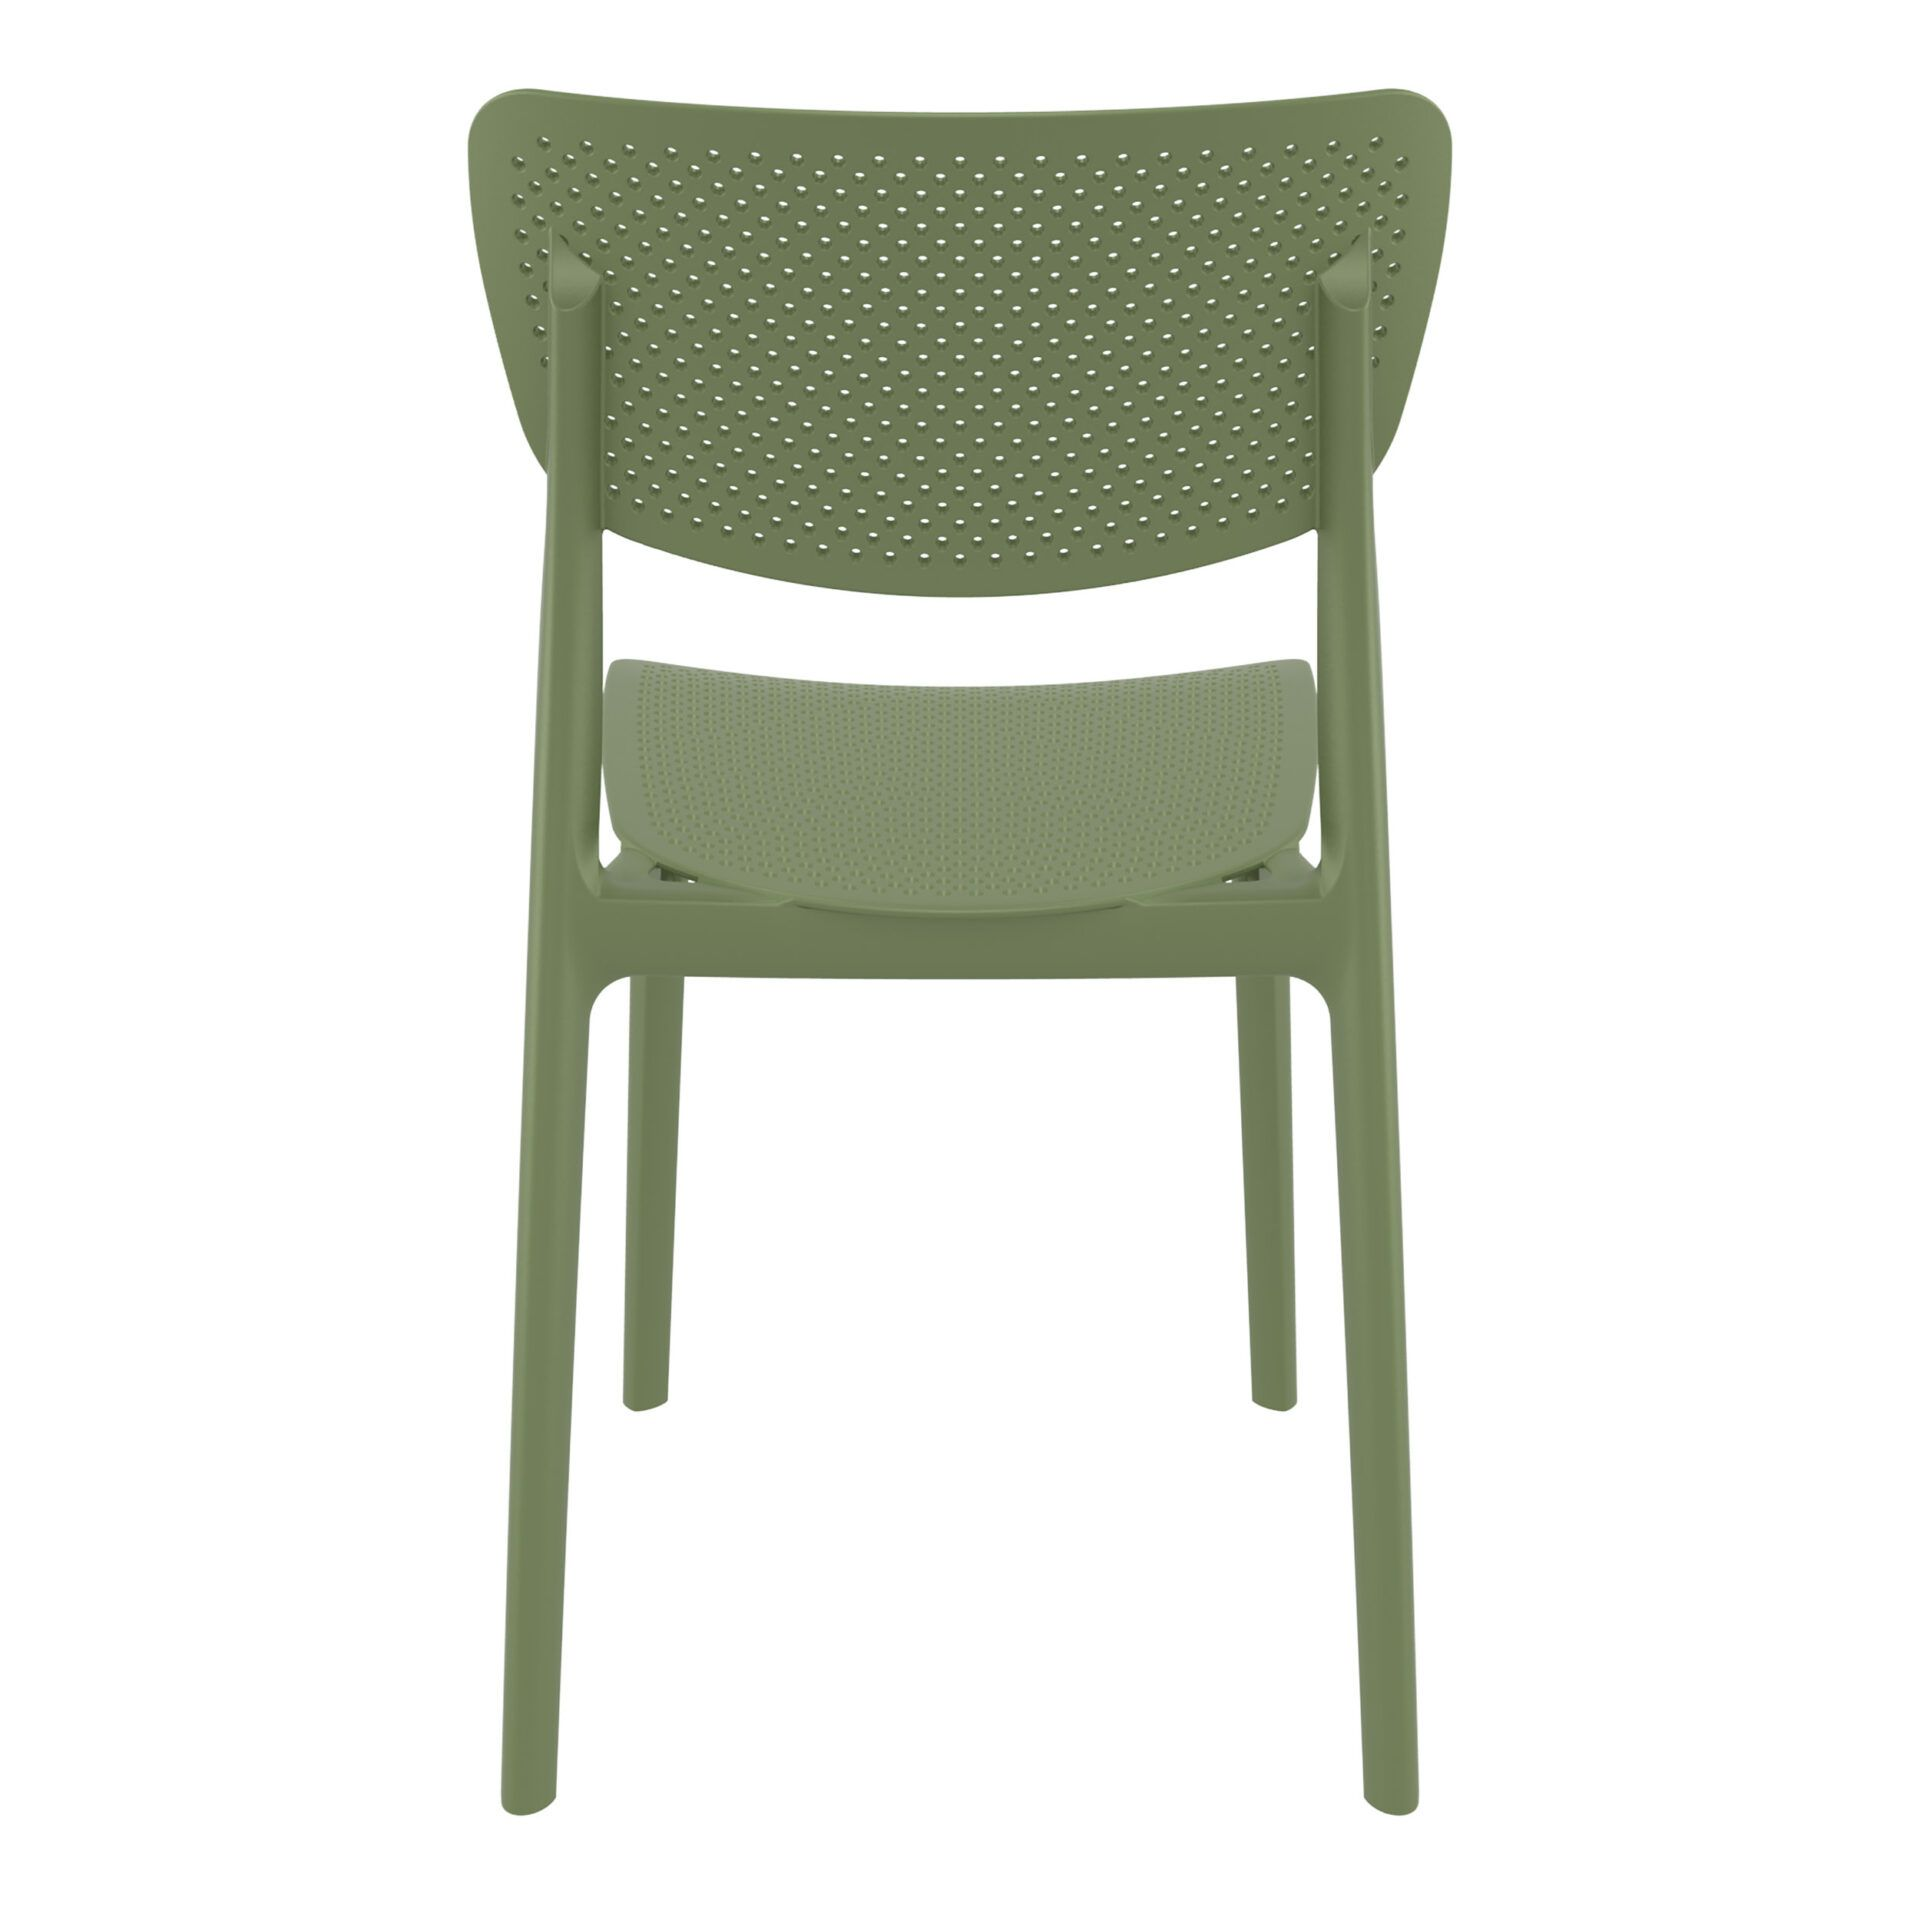 polypropylene hospitality seating lucy chair olive green back